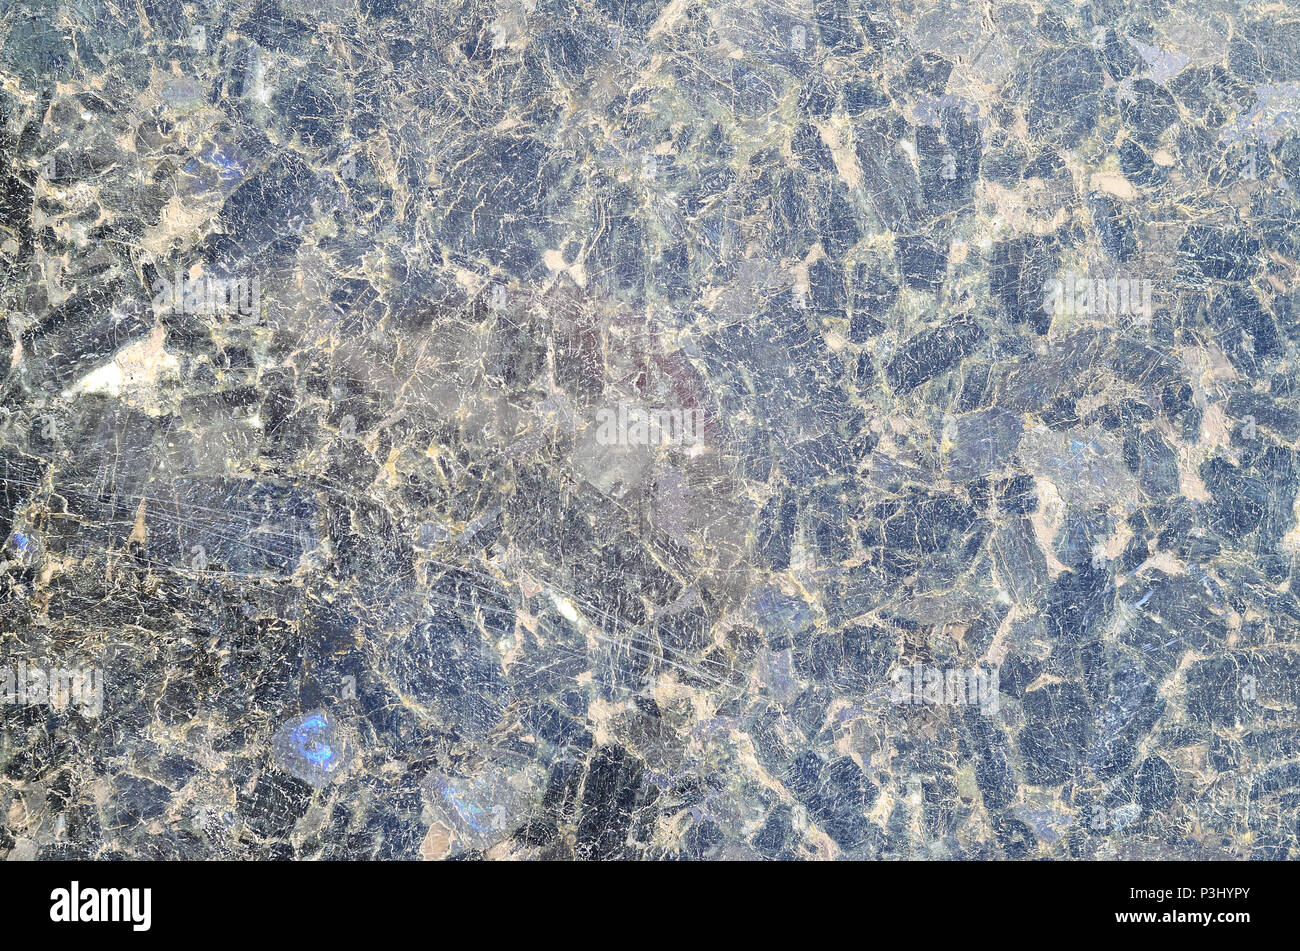 Dark Blue Close Up Granite Texture Pattern Surface Abstract Background Black Stone For Wallpaper